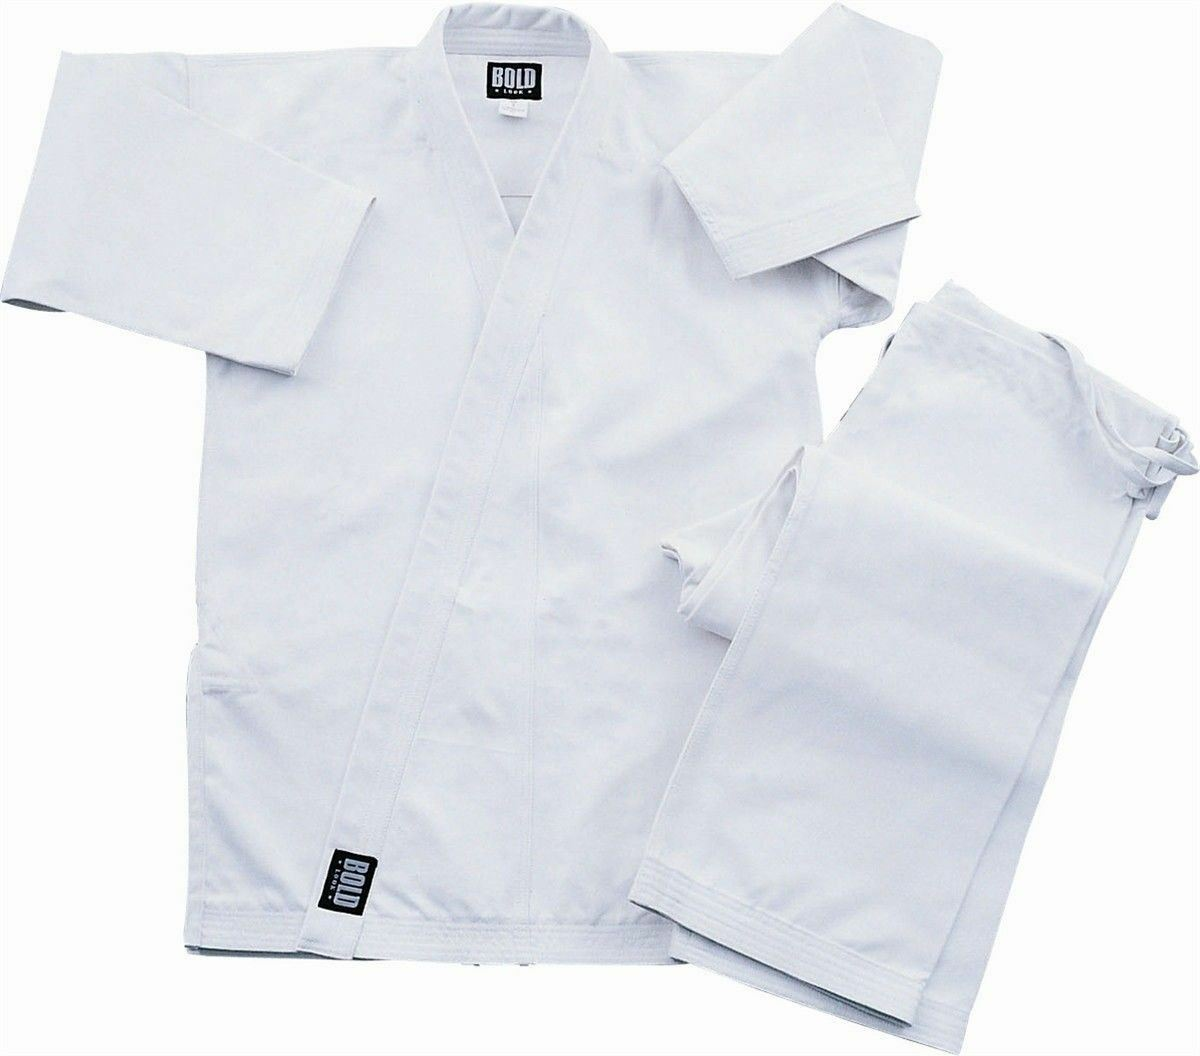 White Super Heavyweight 14oz Brushed Cotton Karate Uniform  by Bold 500w  wholesale prices